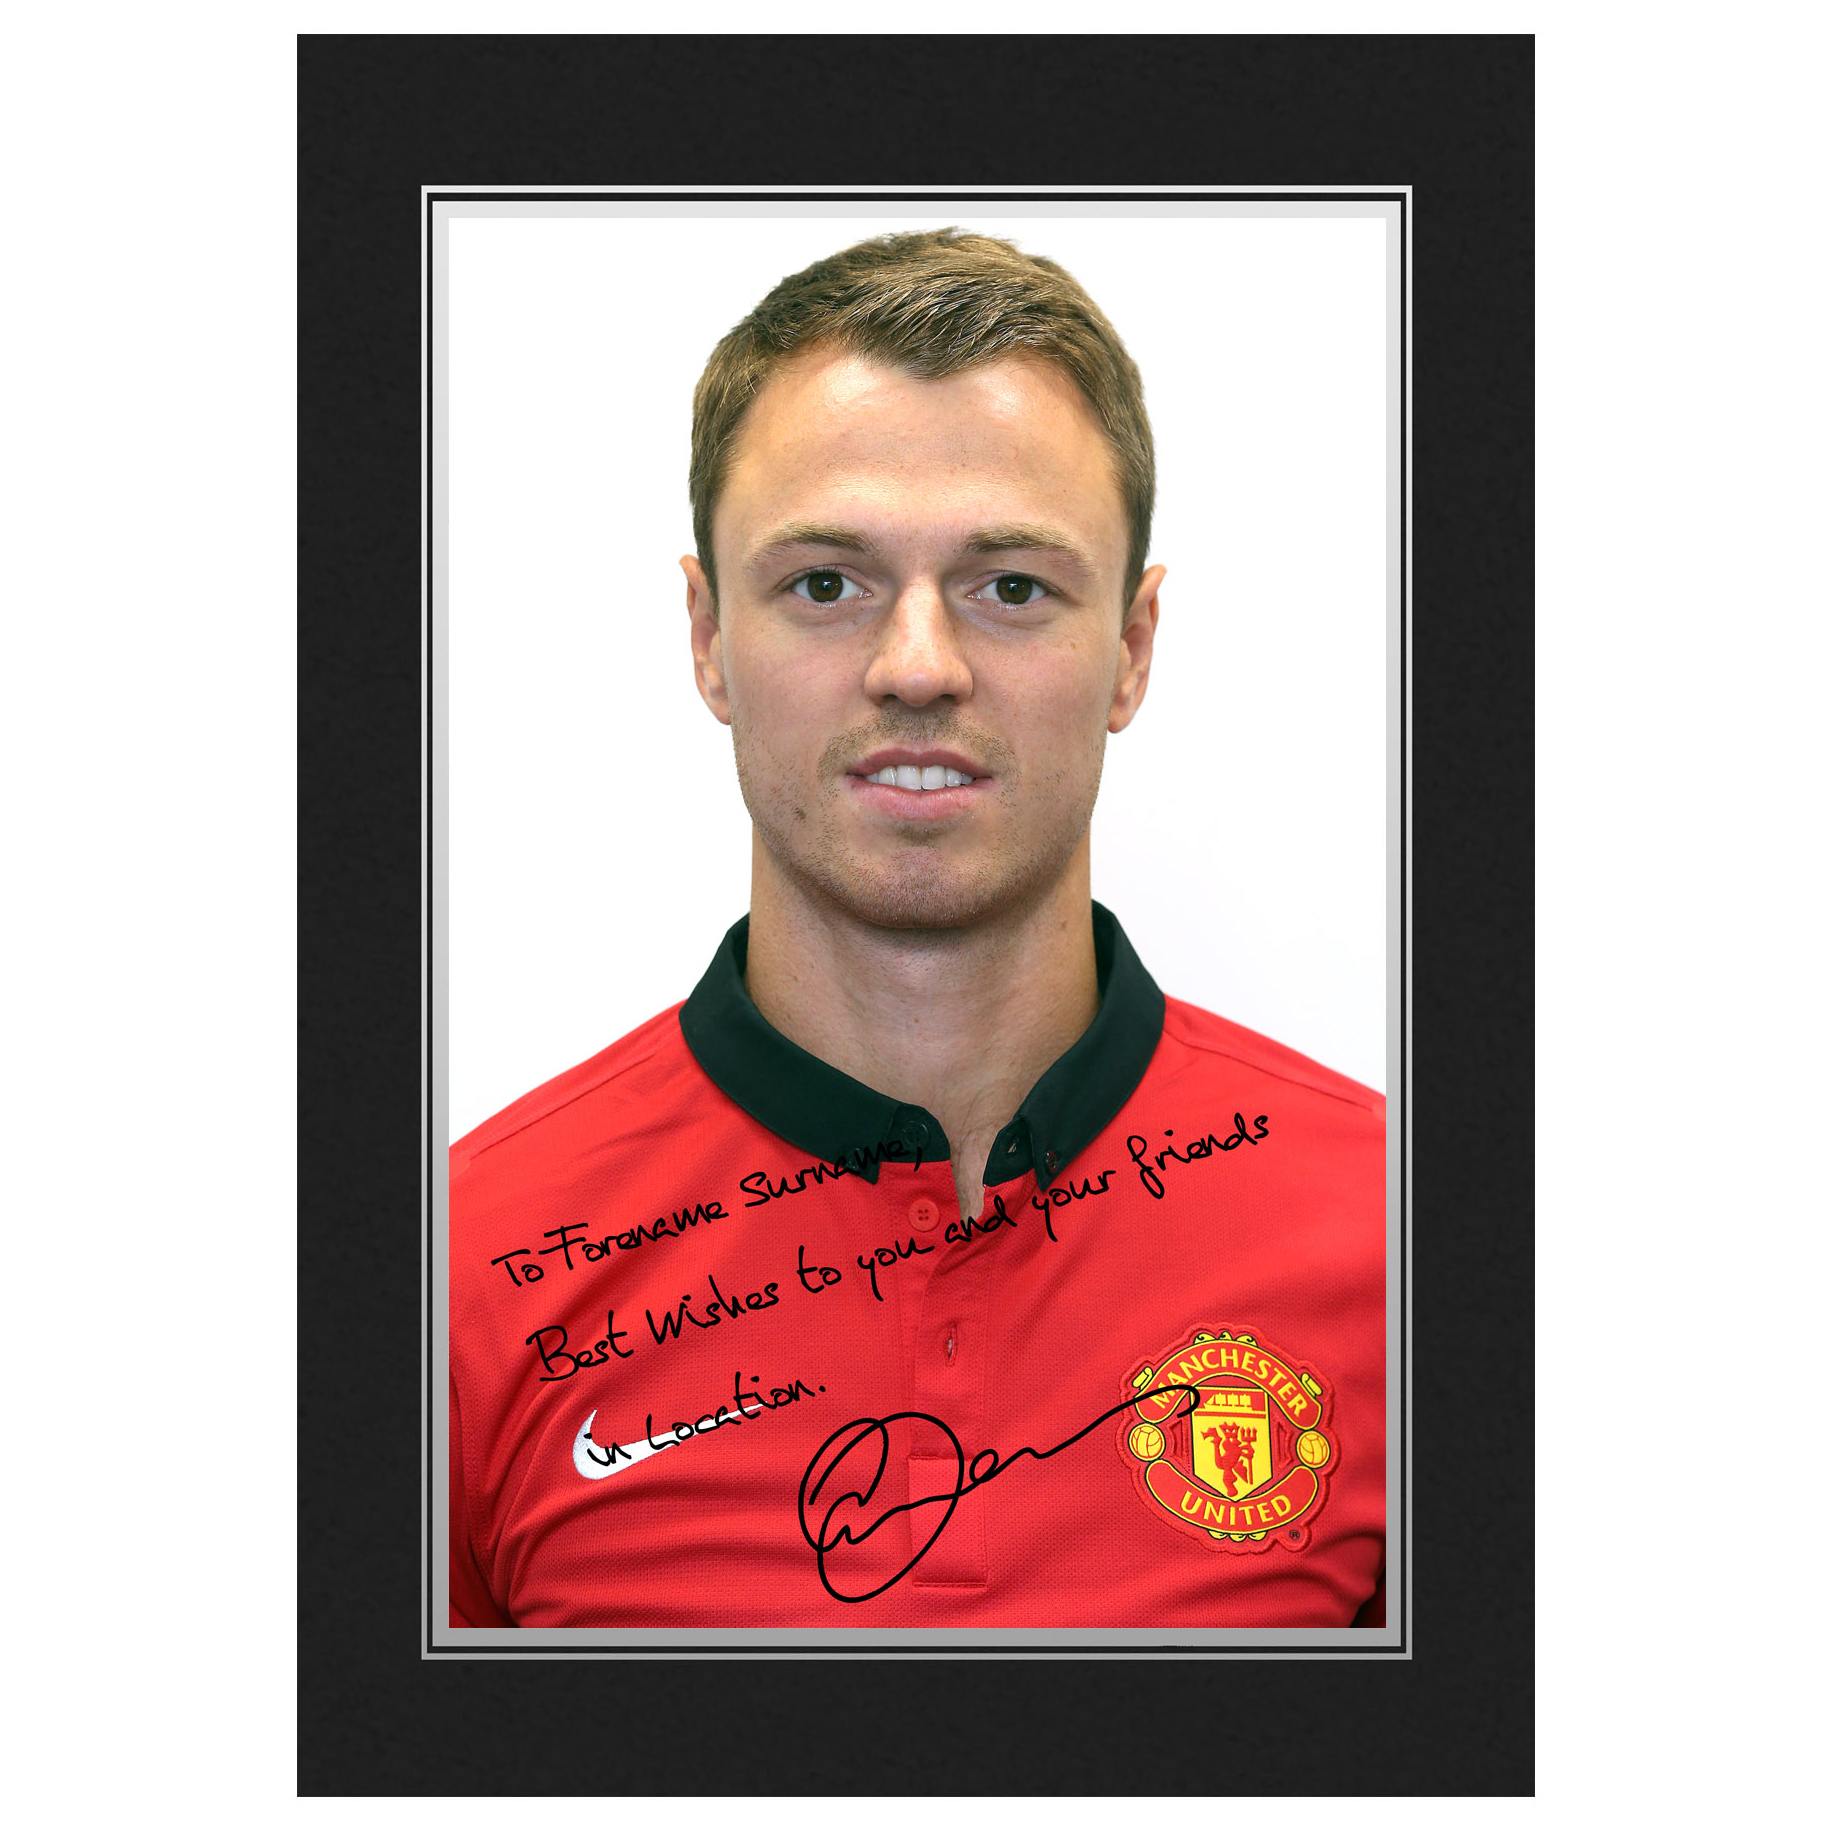 Manchester United Personalised Signature Photo in Presentation Folder - Evans